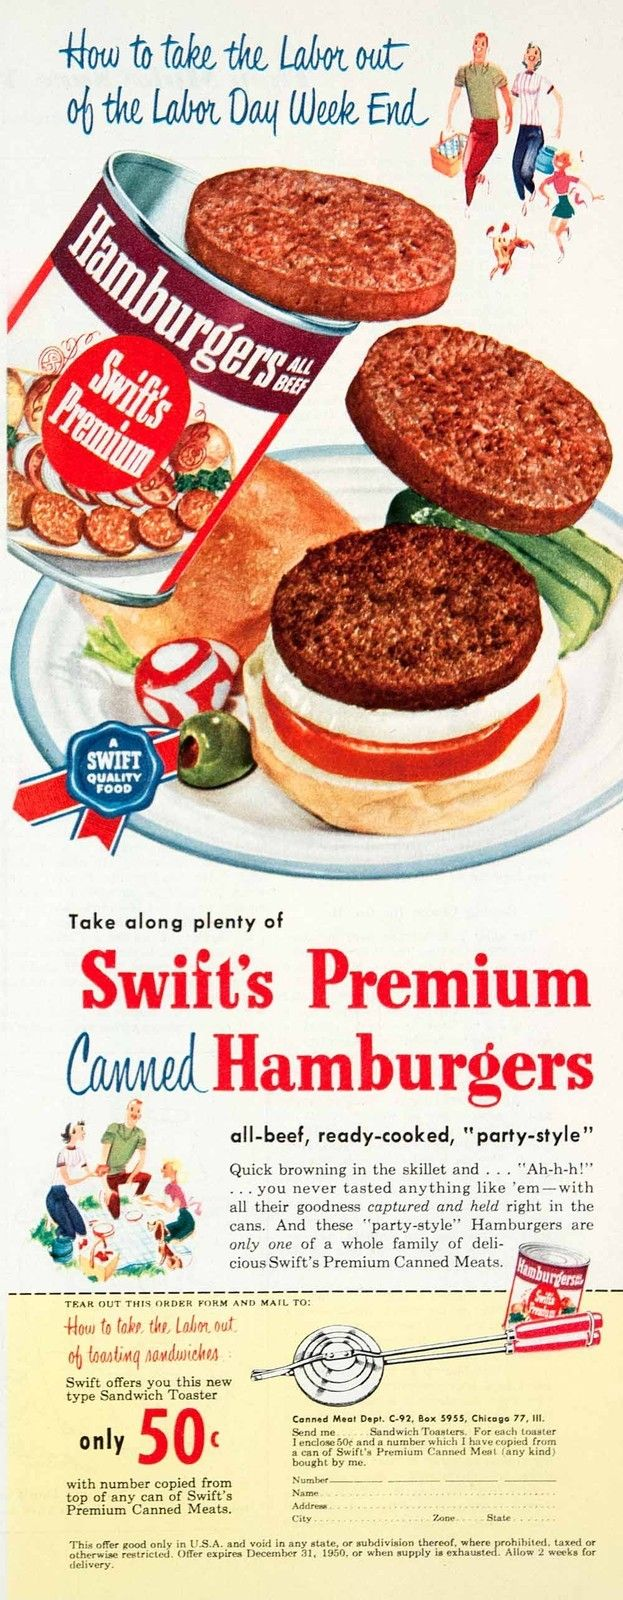 Swift's Premium Canned Hamburgers.